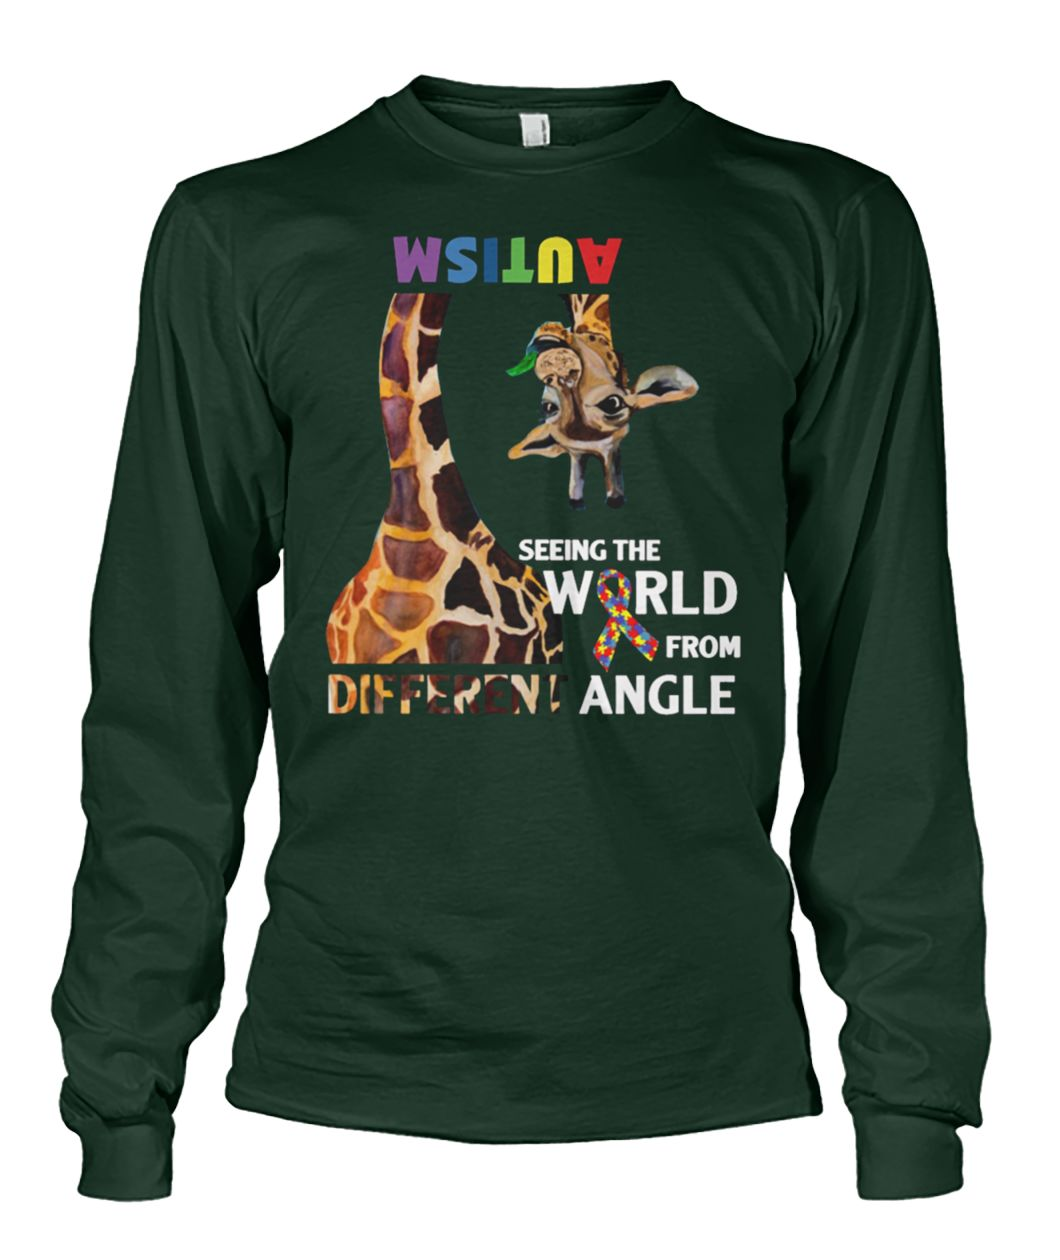 Giraffe autism seeing the world from different angle unisex long sleeve